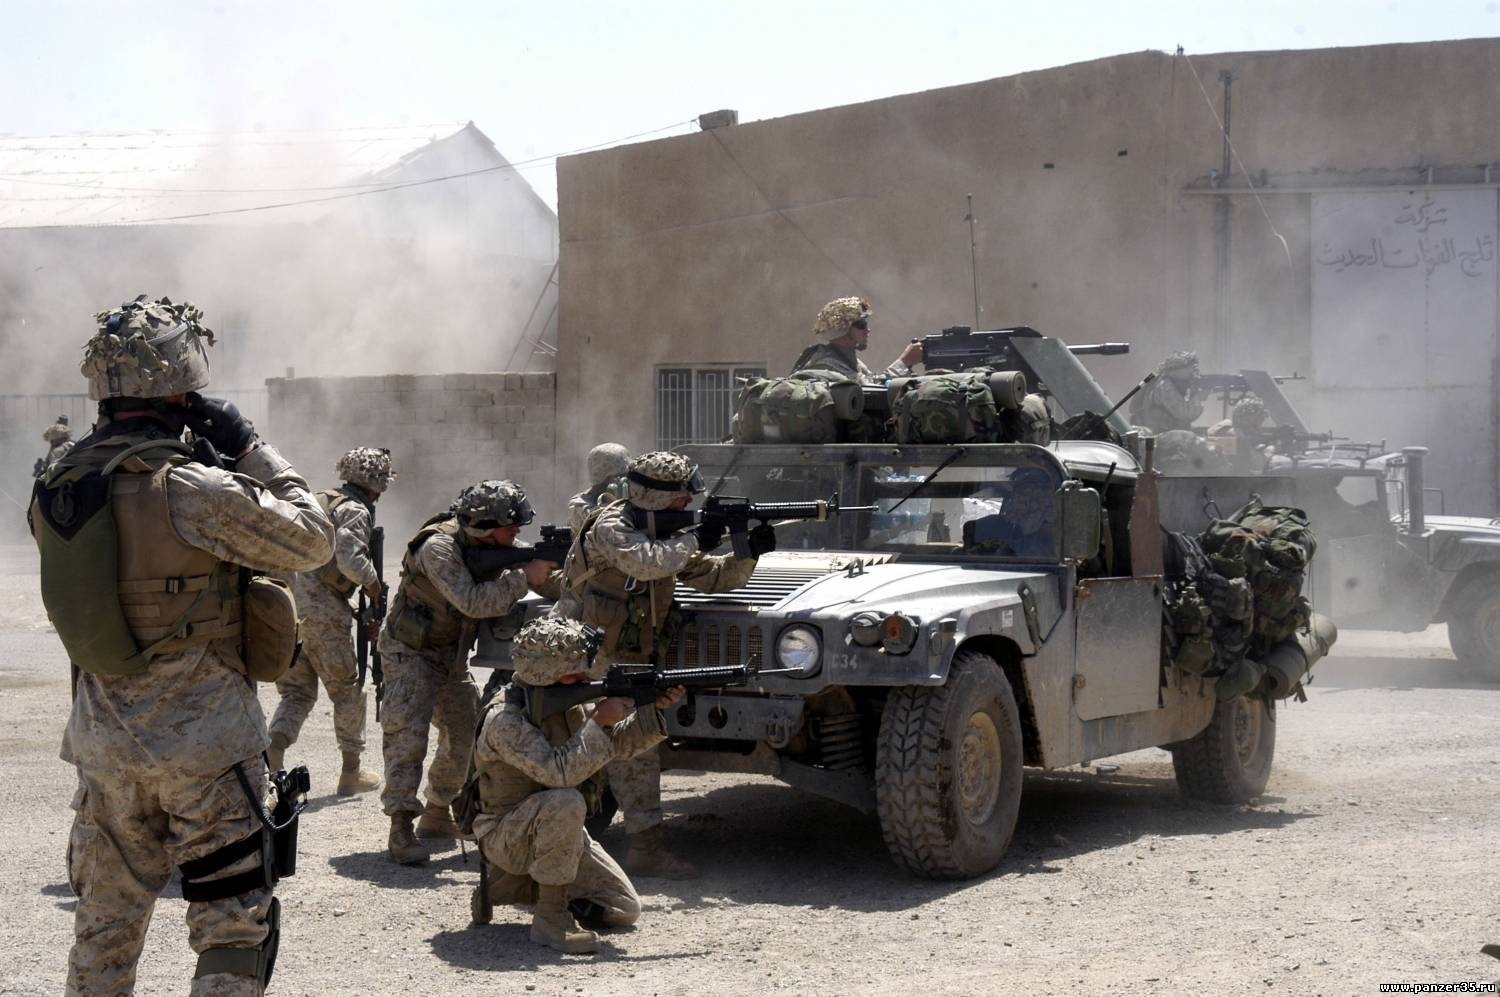 battle of fallujah The second battle of fallujah — code-named operation al-fajr (arabic,الفجر the dawn) and operation phantom fury — was a joint american, iraqi, and british offensive in november and december 2004, considered the highest point of conflict in fallujah during the iraq war.